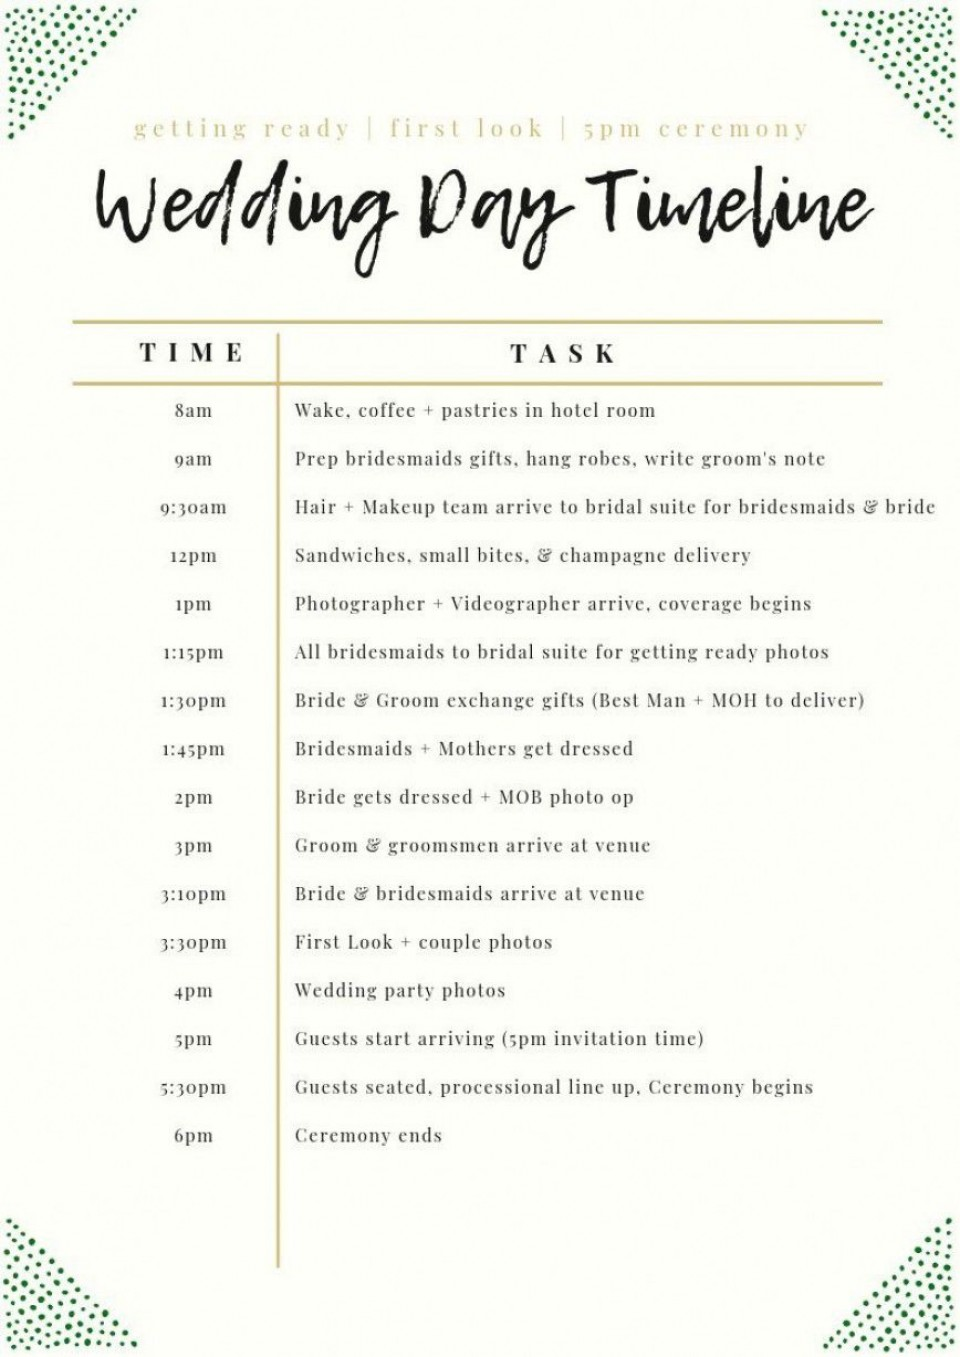 003 Unforgettable Wedding Day Schedule Template High Definition  Excel Editable Timeline Free Word960